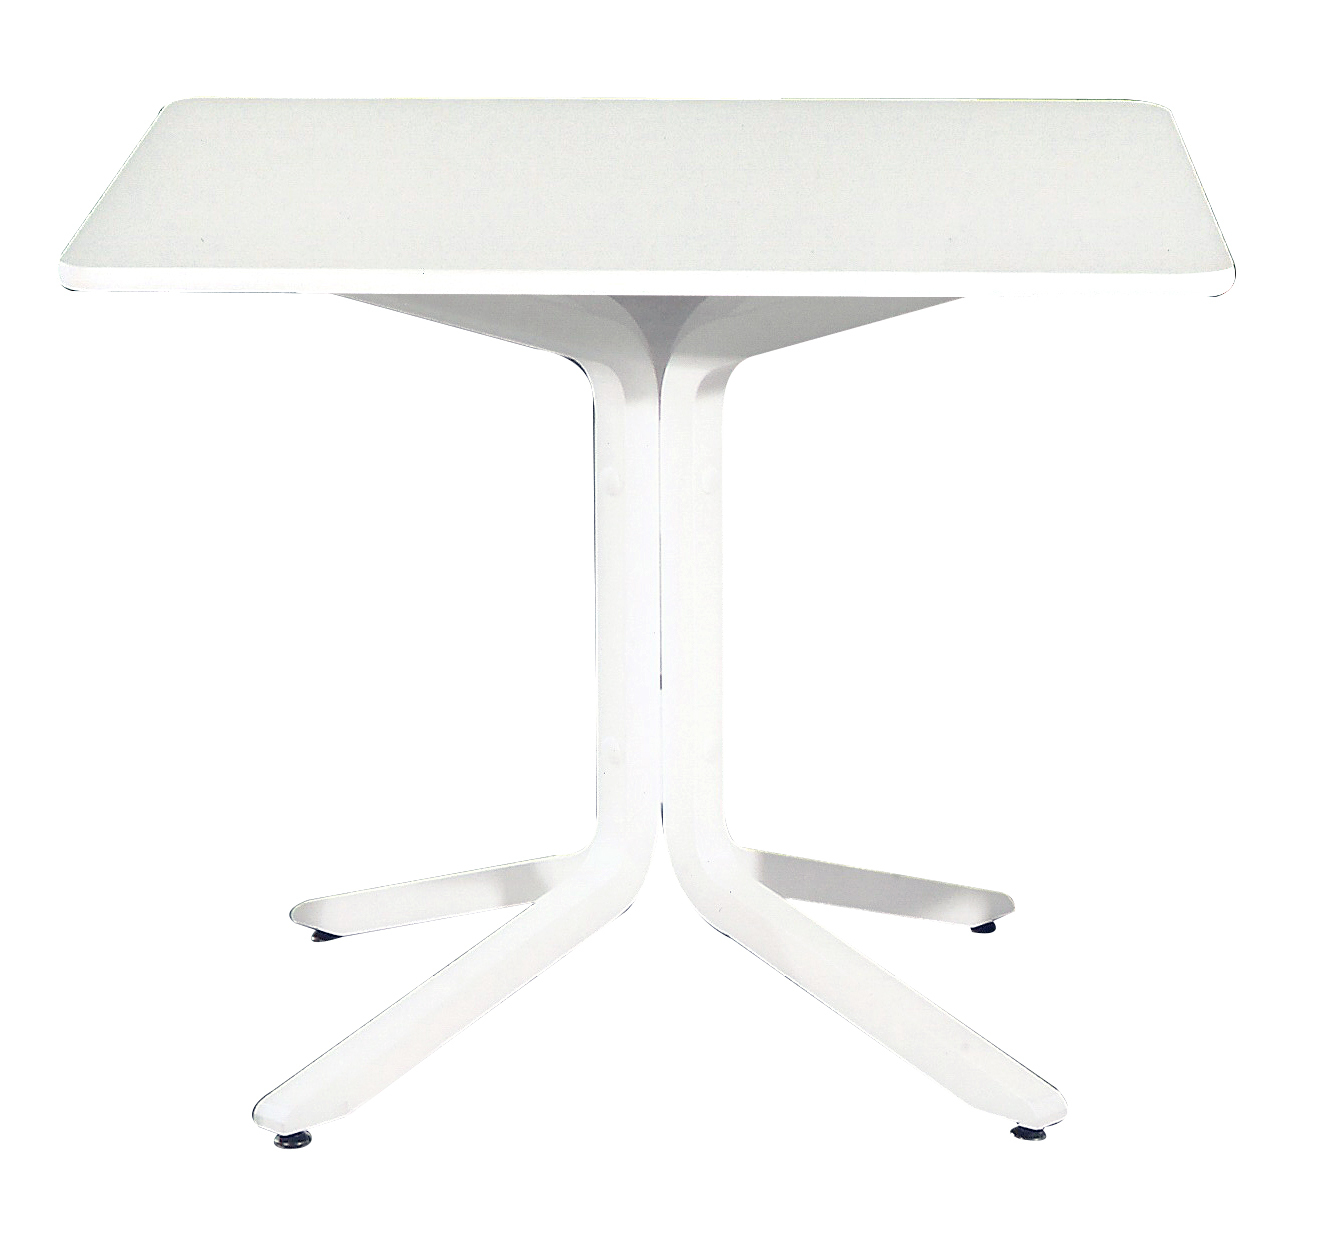 dining table 3838 square 36''.jpg